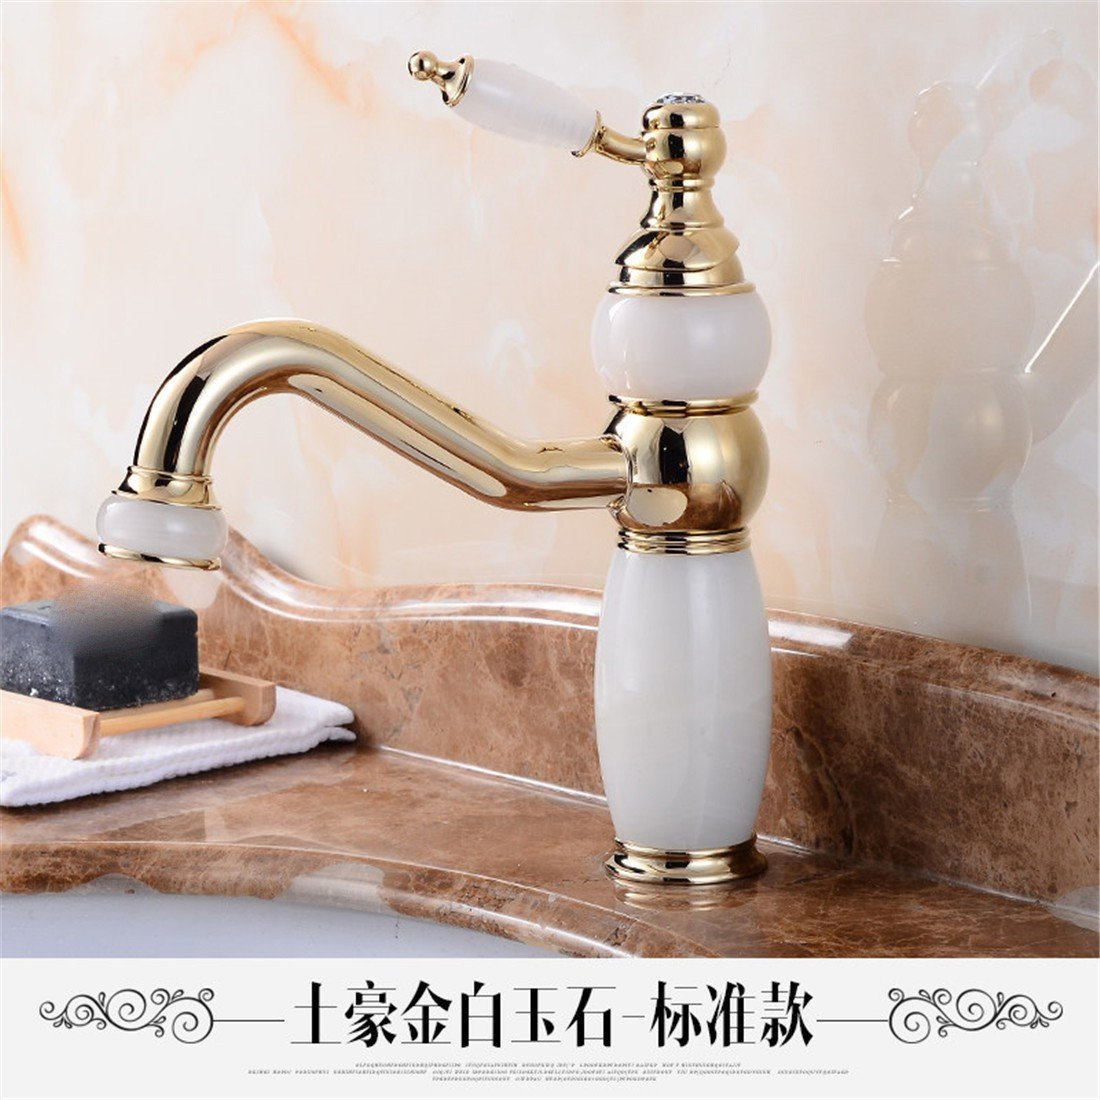 gold and White Jade 1 Hlluya Professional Sink Mixer Tap Kitchen Faucet The Jade faucet marble washbasins pink gold basin full copper golden basin of hot and cold taps, God light blond white jade